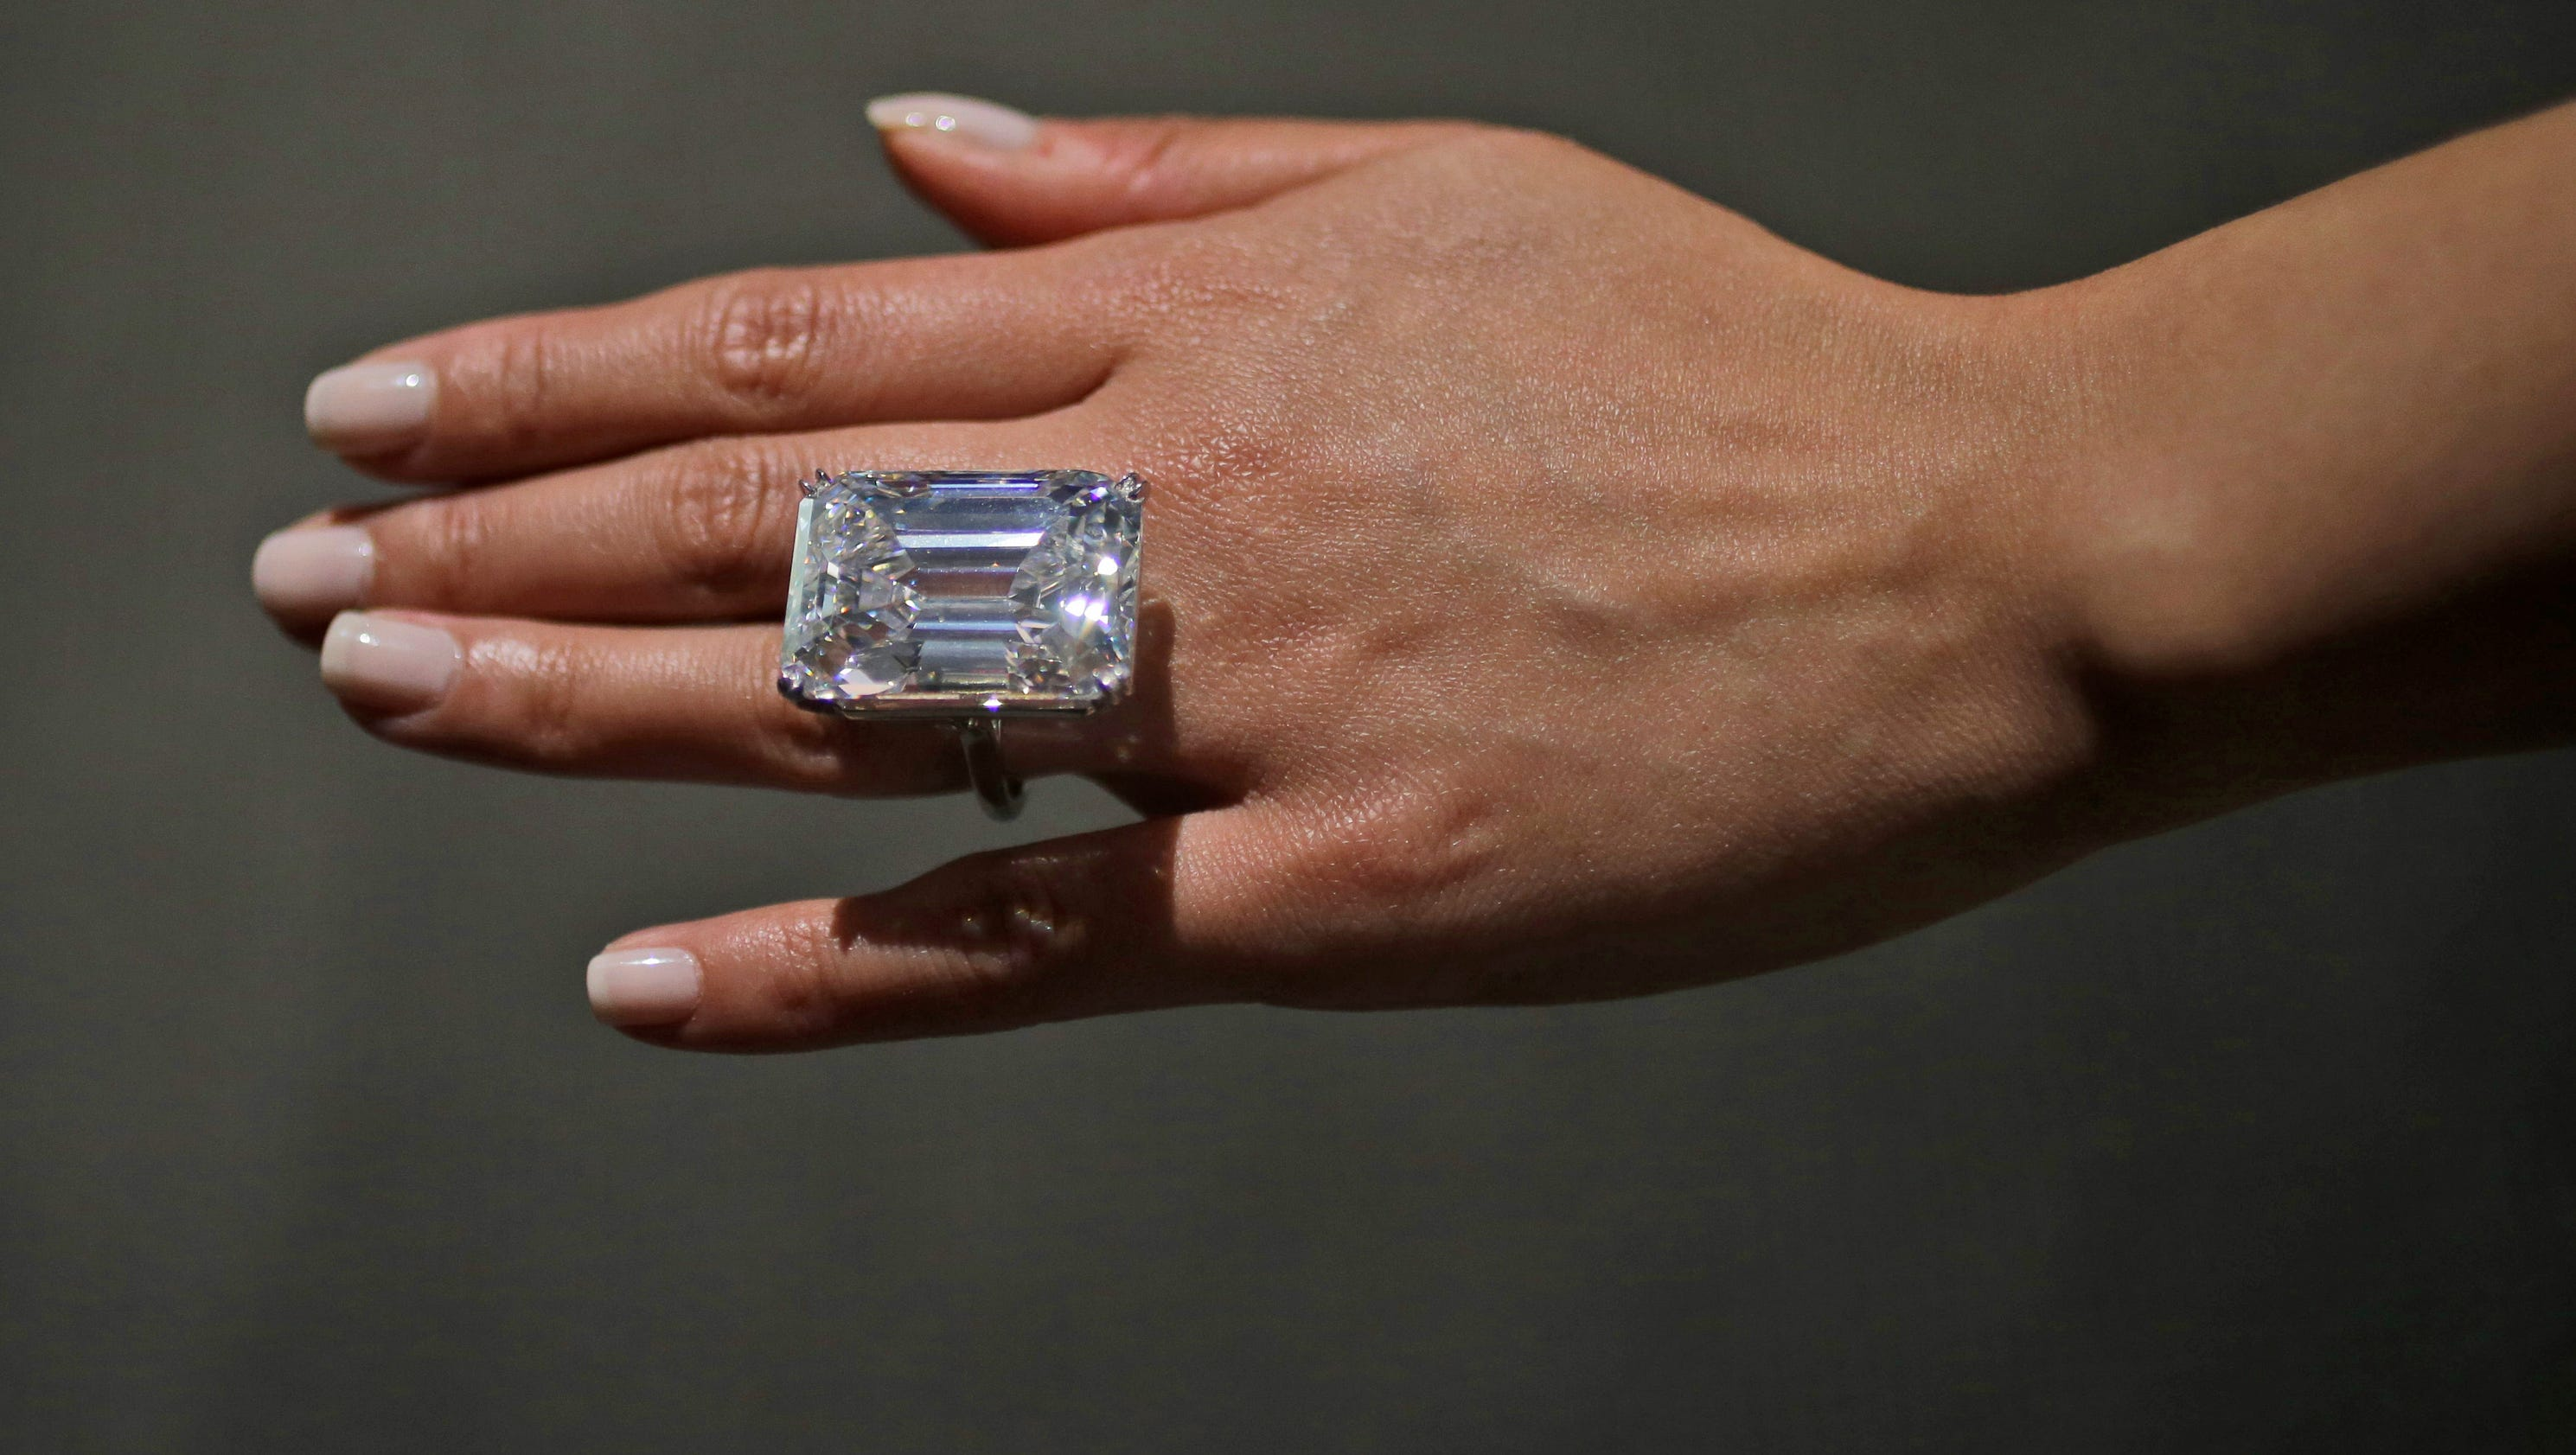 sothebys ap at ring cut emerald nation story large now carat sells for news massive rings engagement white diamond auction